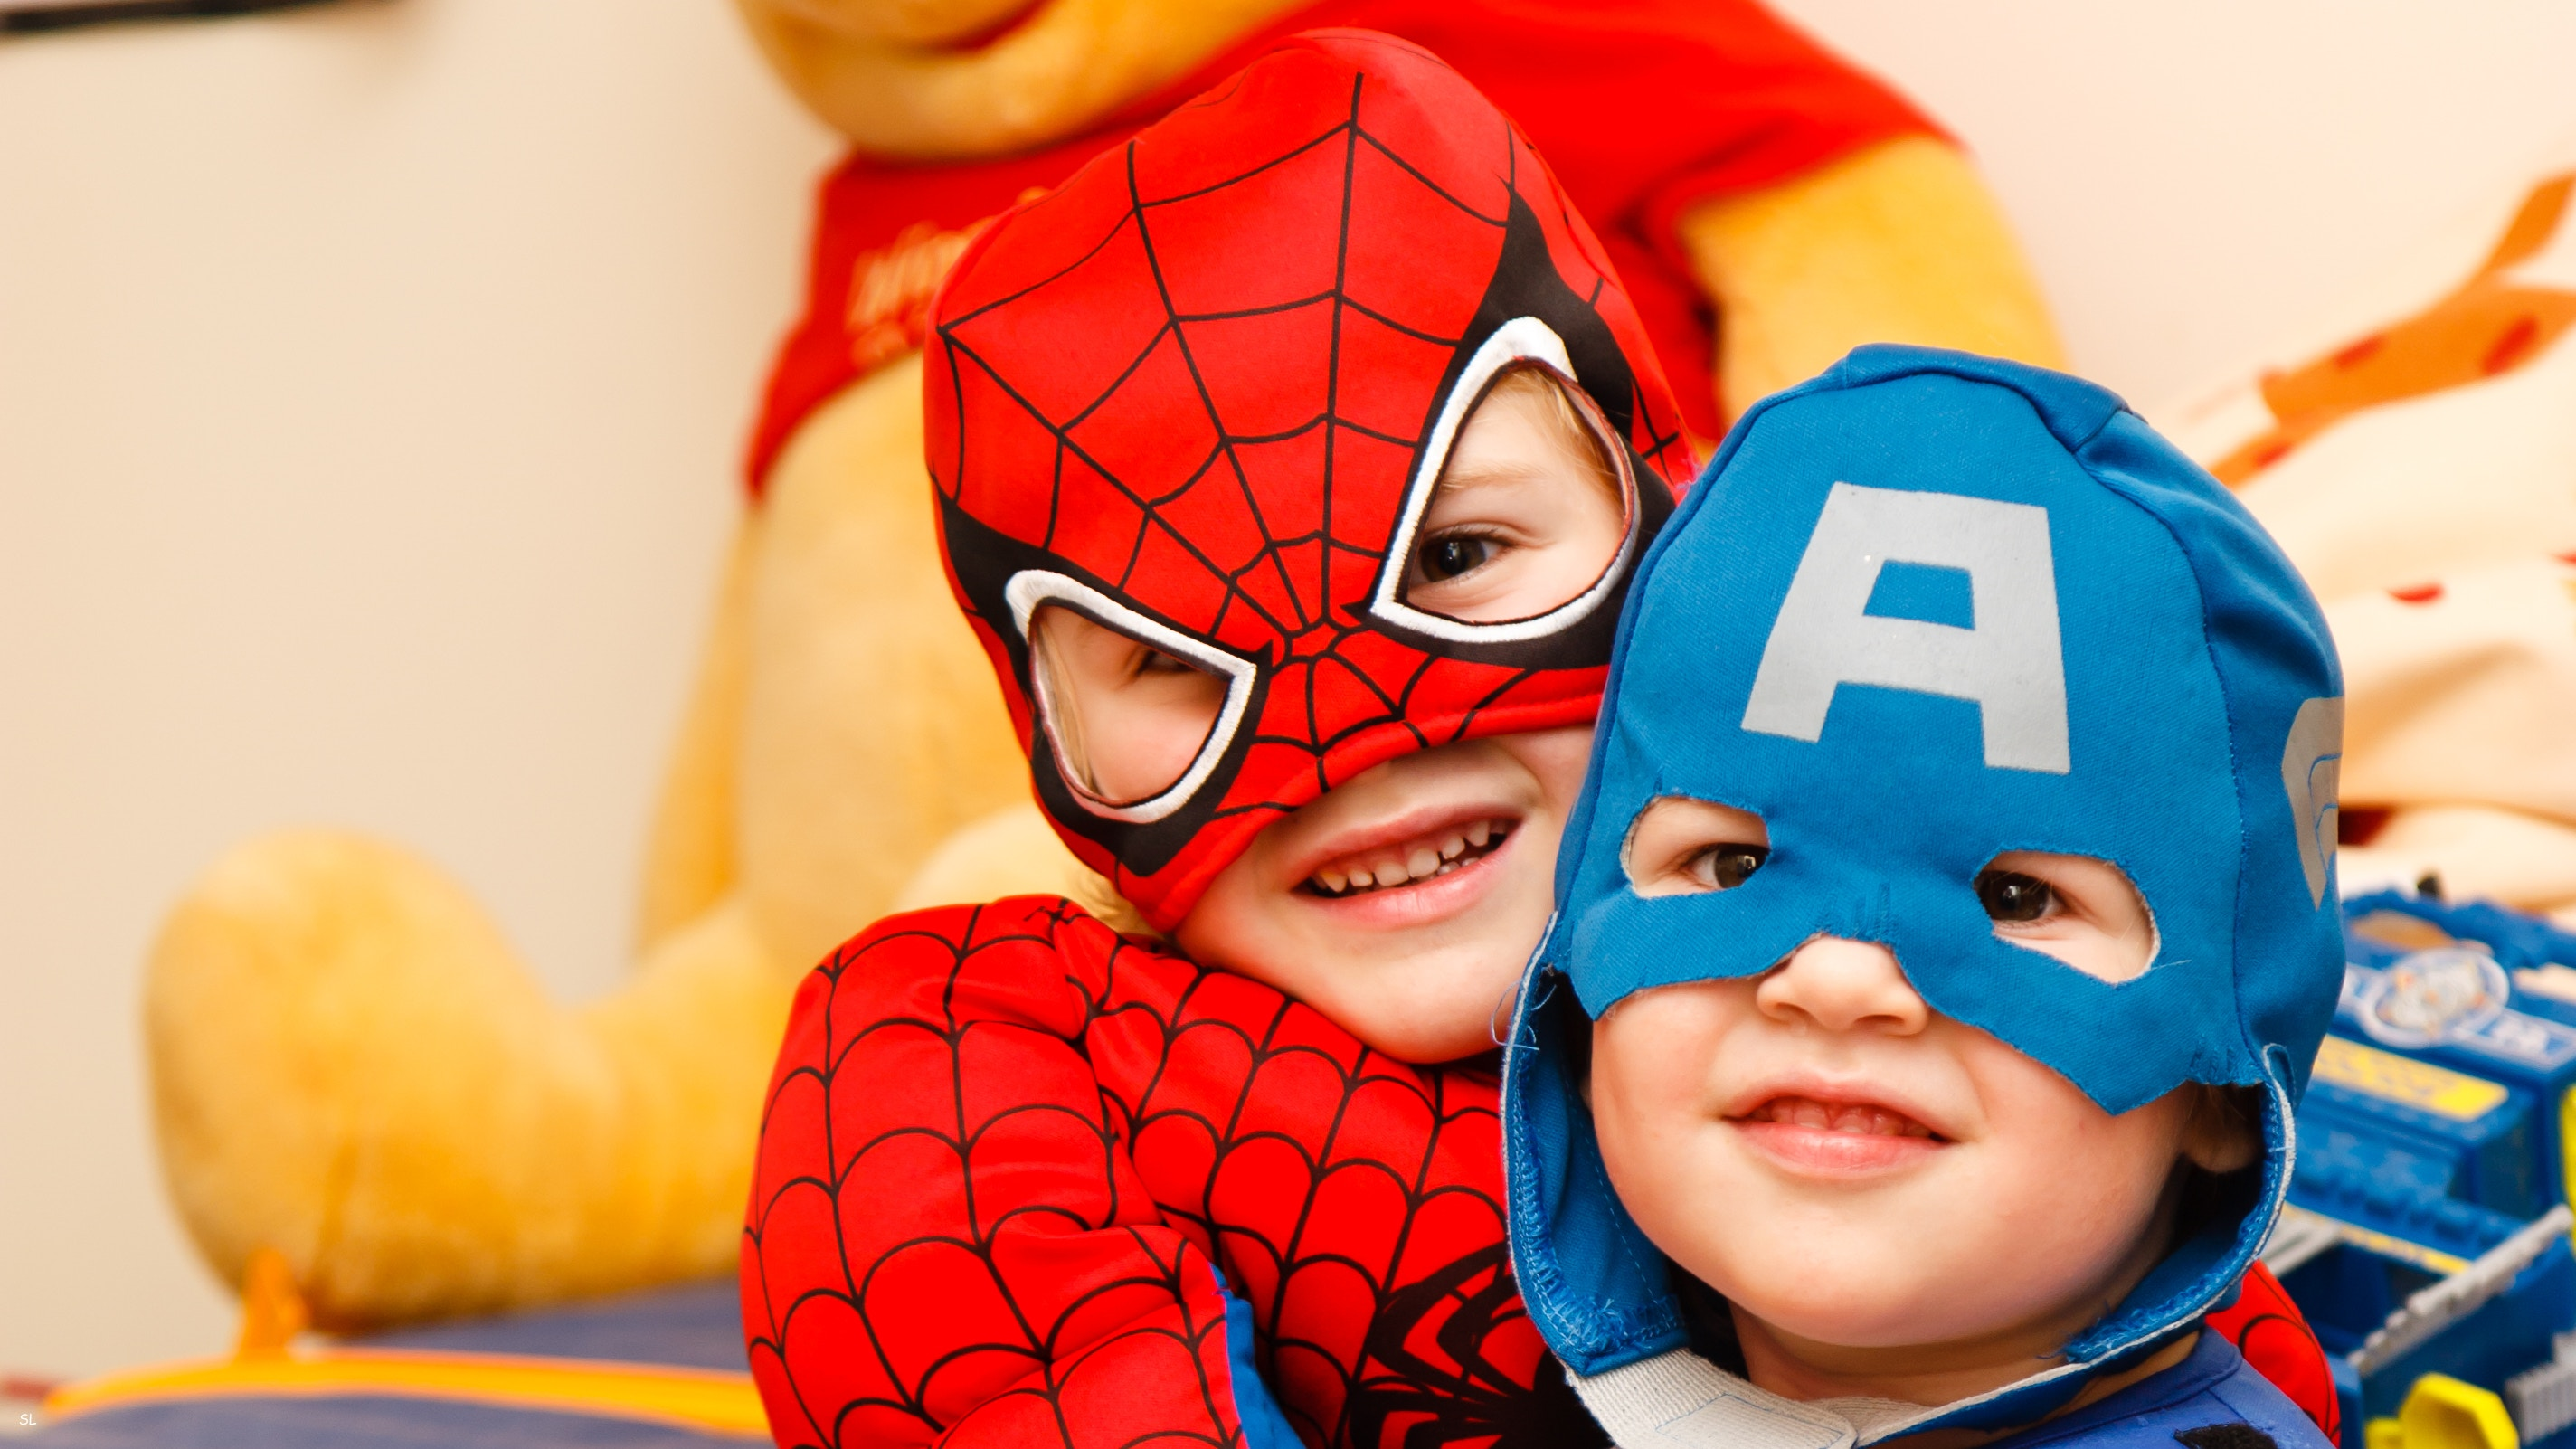 steven-libralon-Do1GQljlNk8-unsplash.jpg